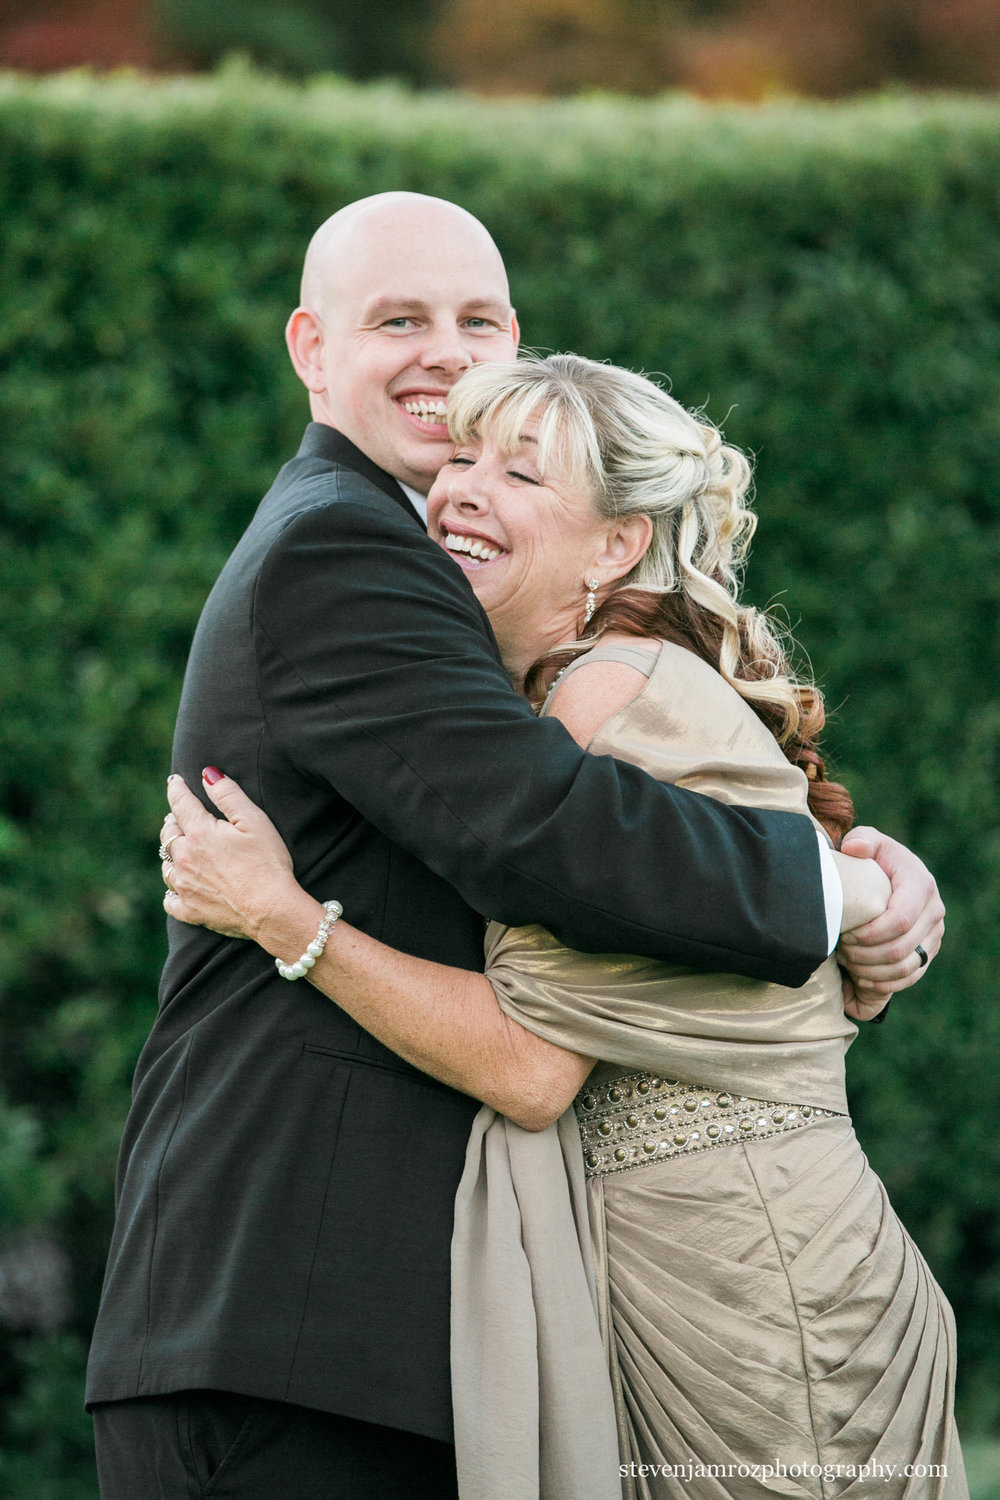 mother-groom-hug-raleigh-steven-jamroz-photography-0304.jpg